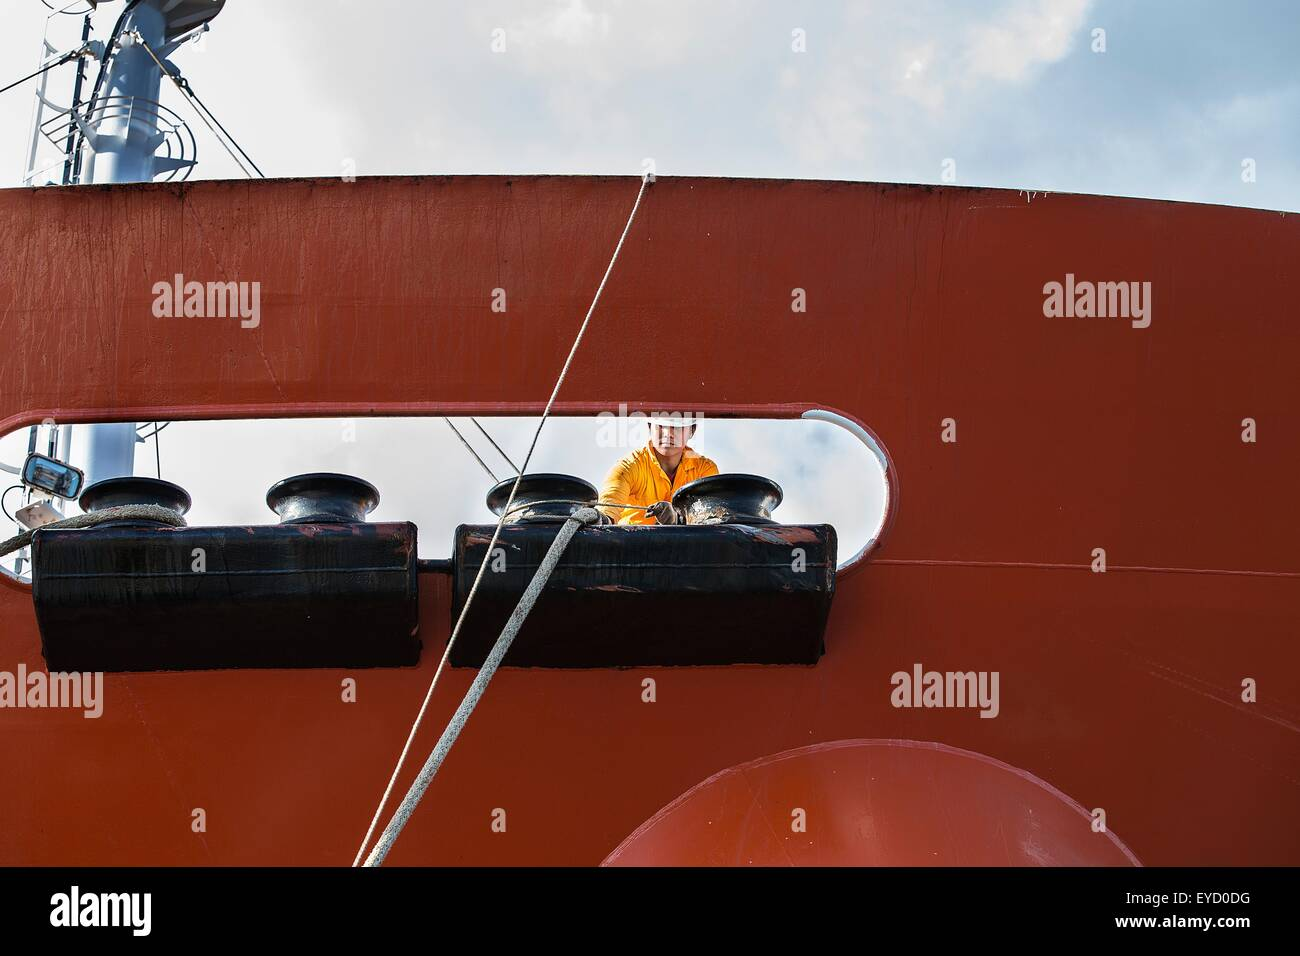 Worker fastening ropes to mooring posts on oil tanker deck - Stock Image